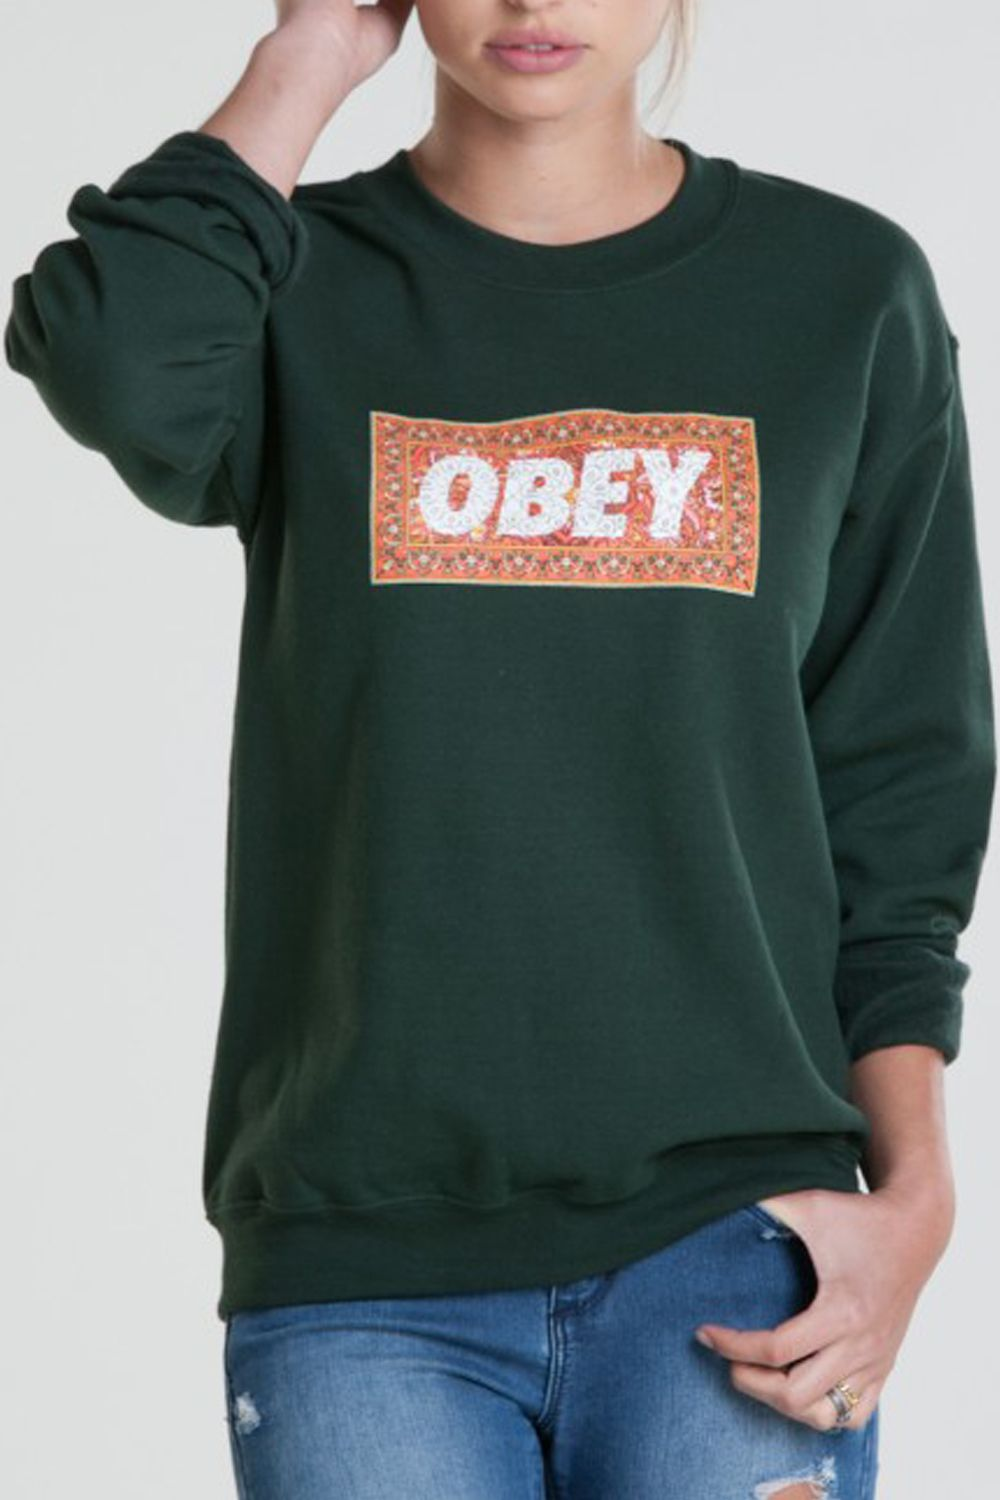 Magic Carpet Throwback Fleece, Knitwear and Sweats - Obey Clothing UK Store  - Obey Mens